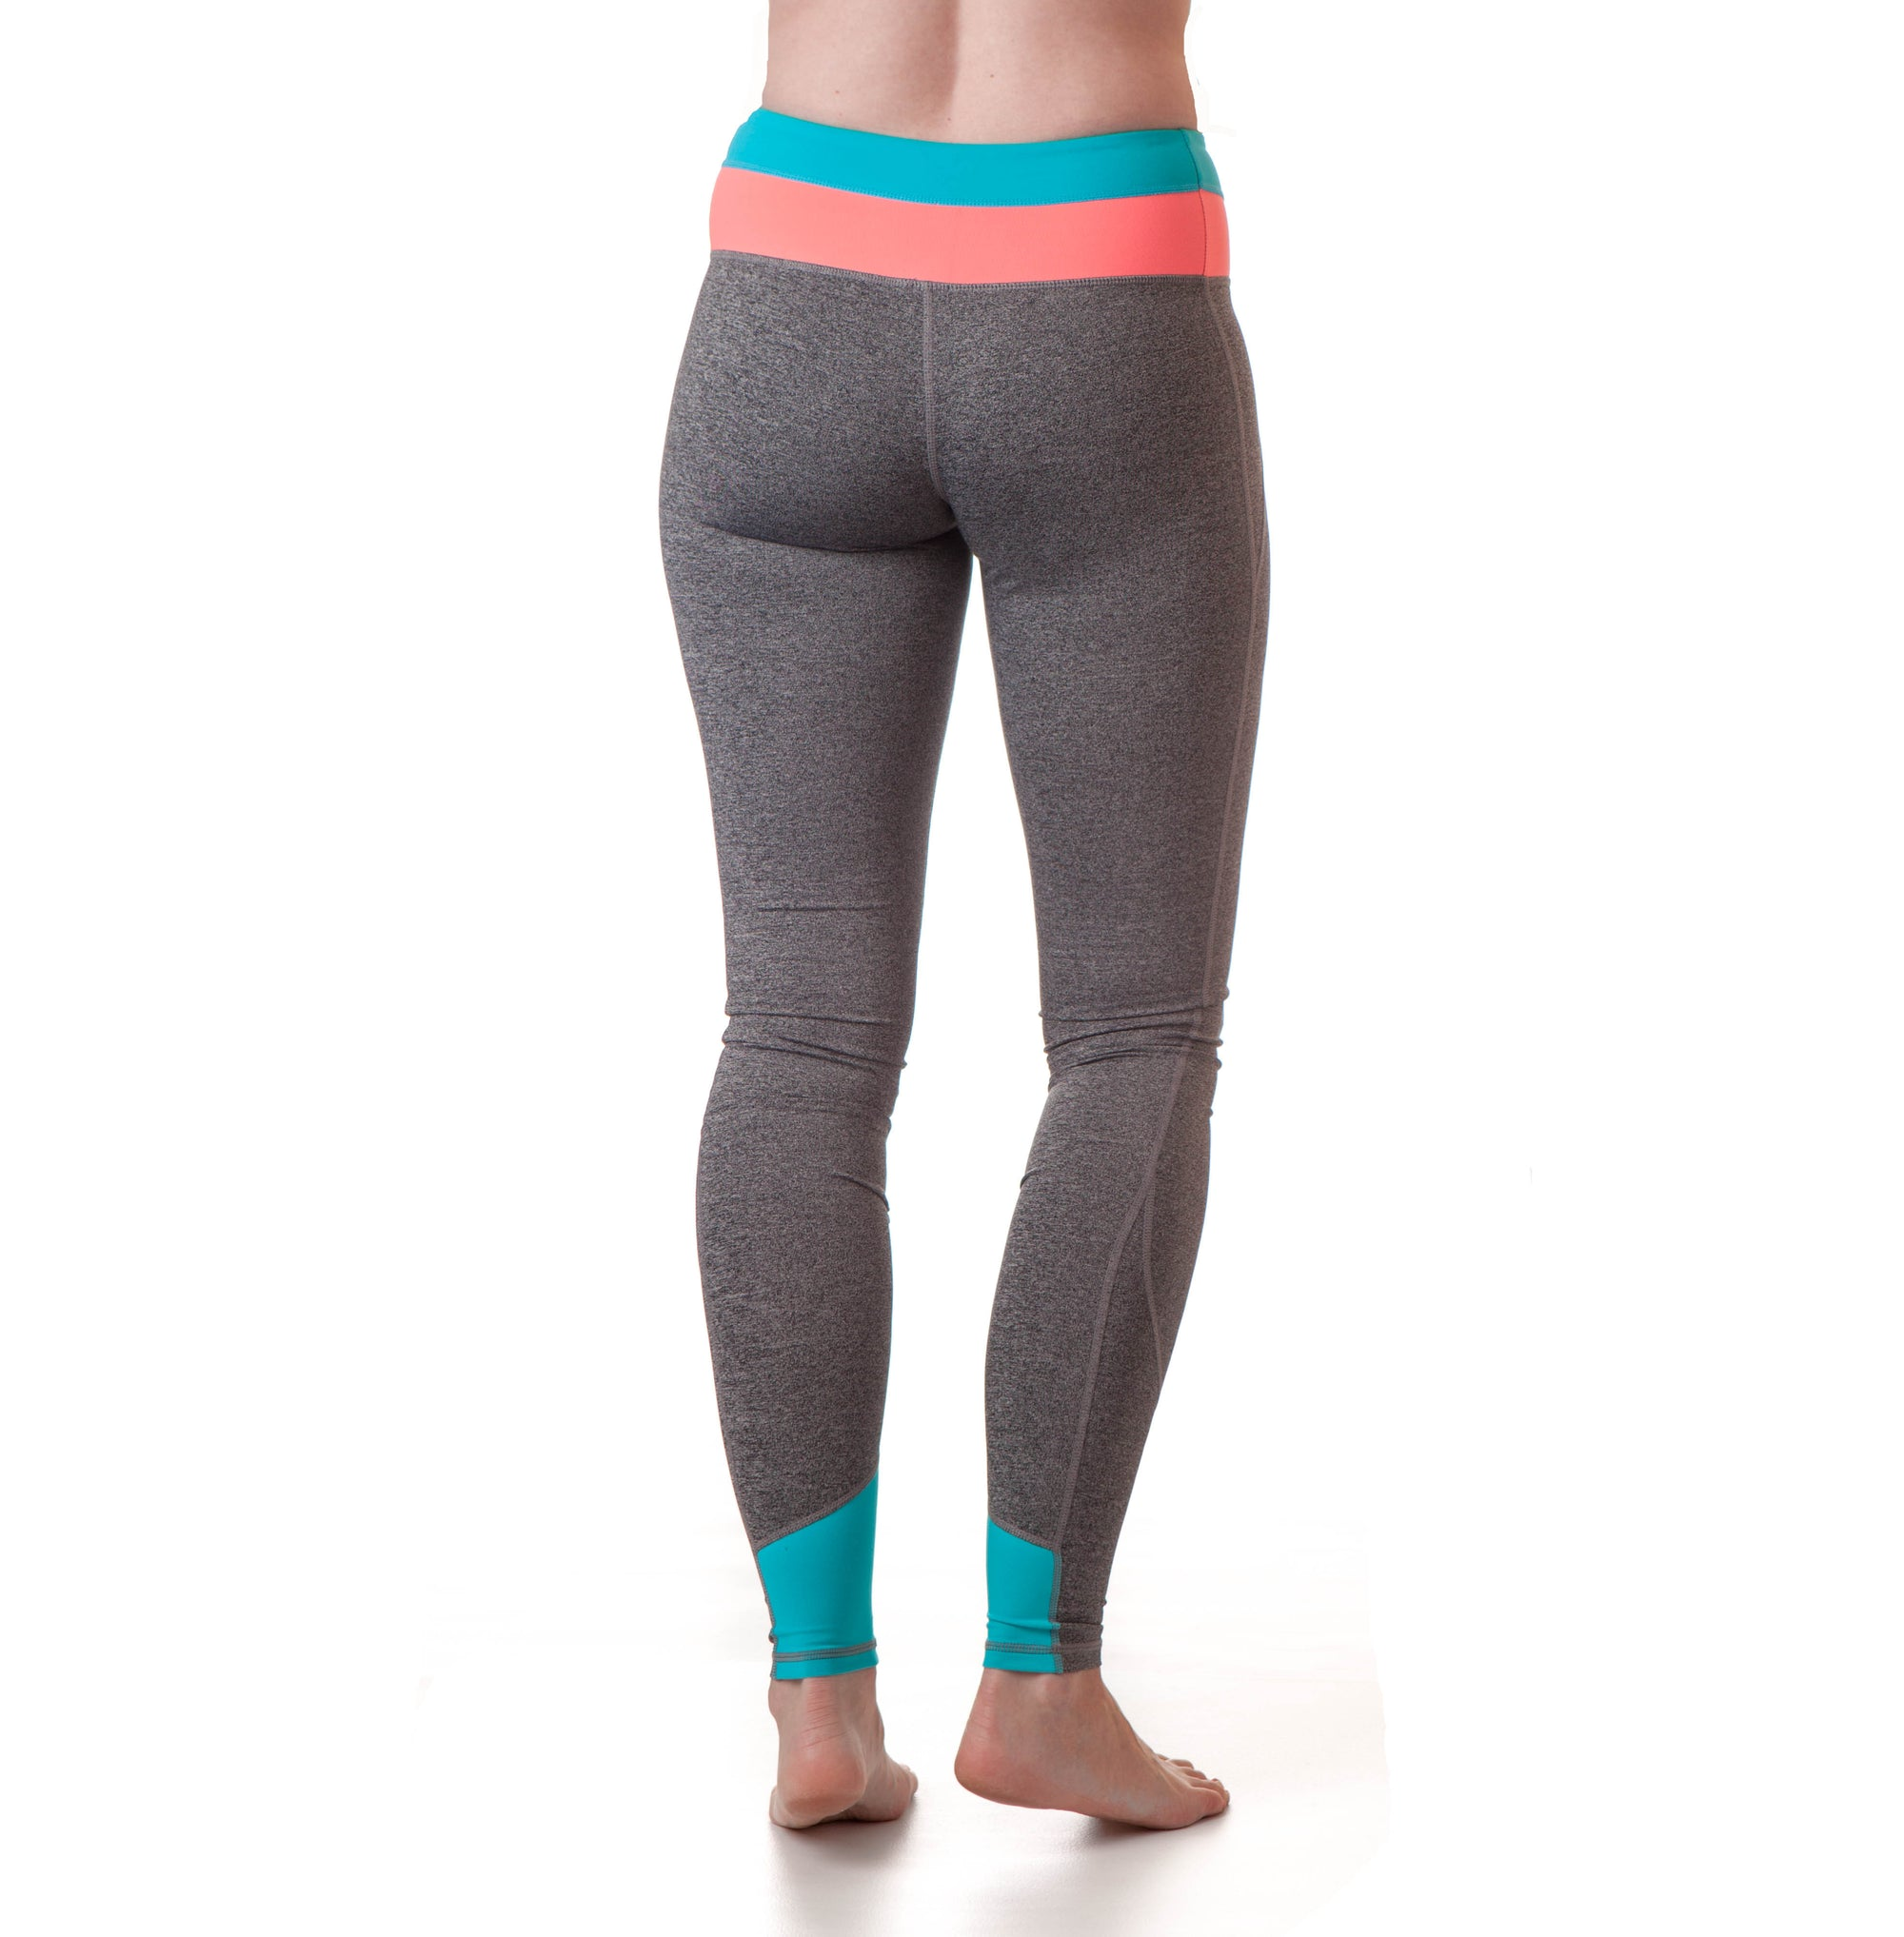 Extra Long Yoga Pants for Tall Women (Coral/Neon Blue) - Kindfolk Athletics